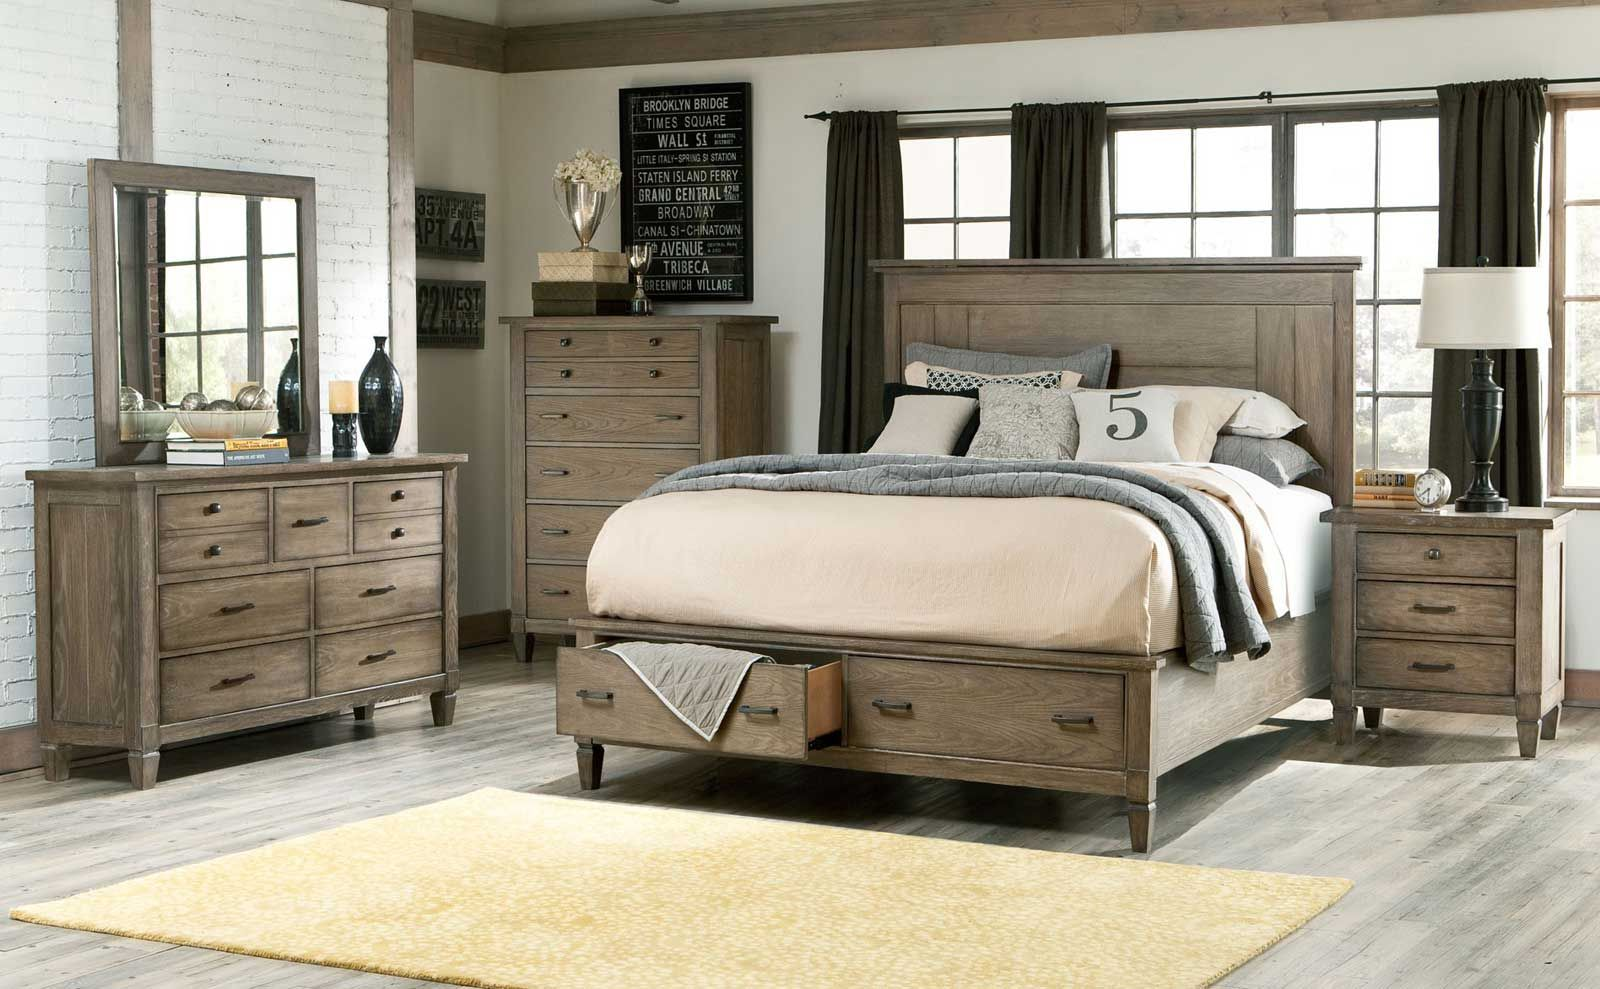 Modern Wood Bedroom Sets image result for wood king size bedroom sets | farm house master